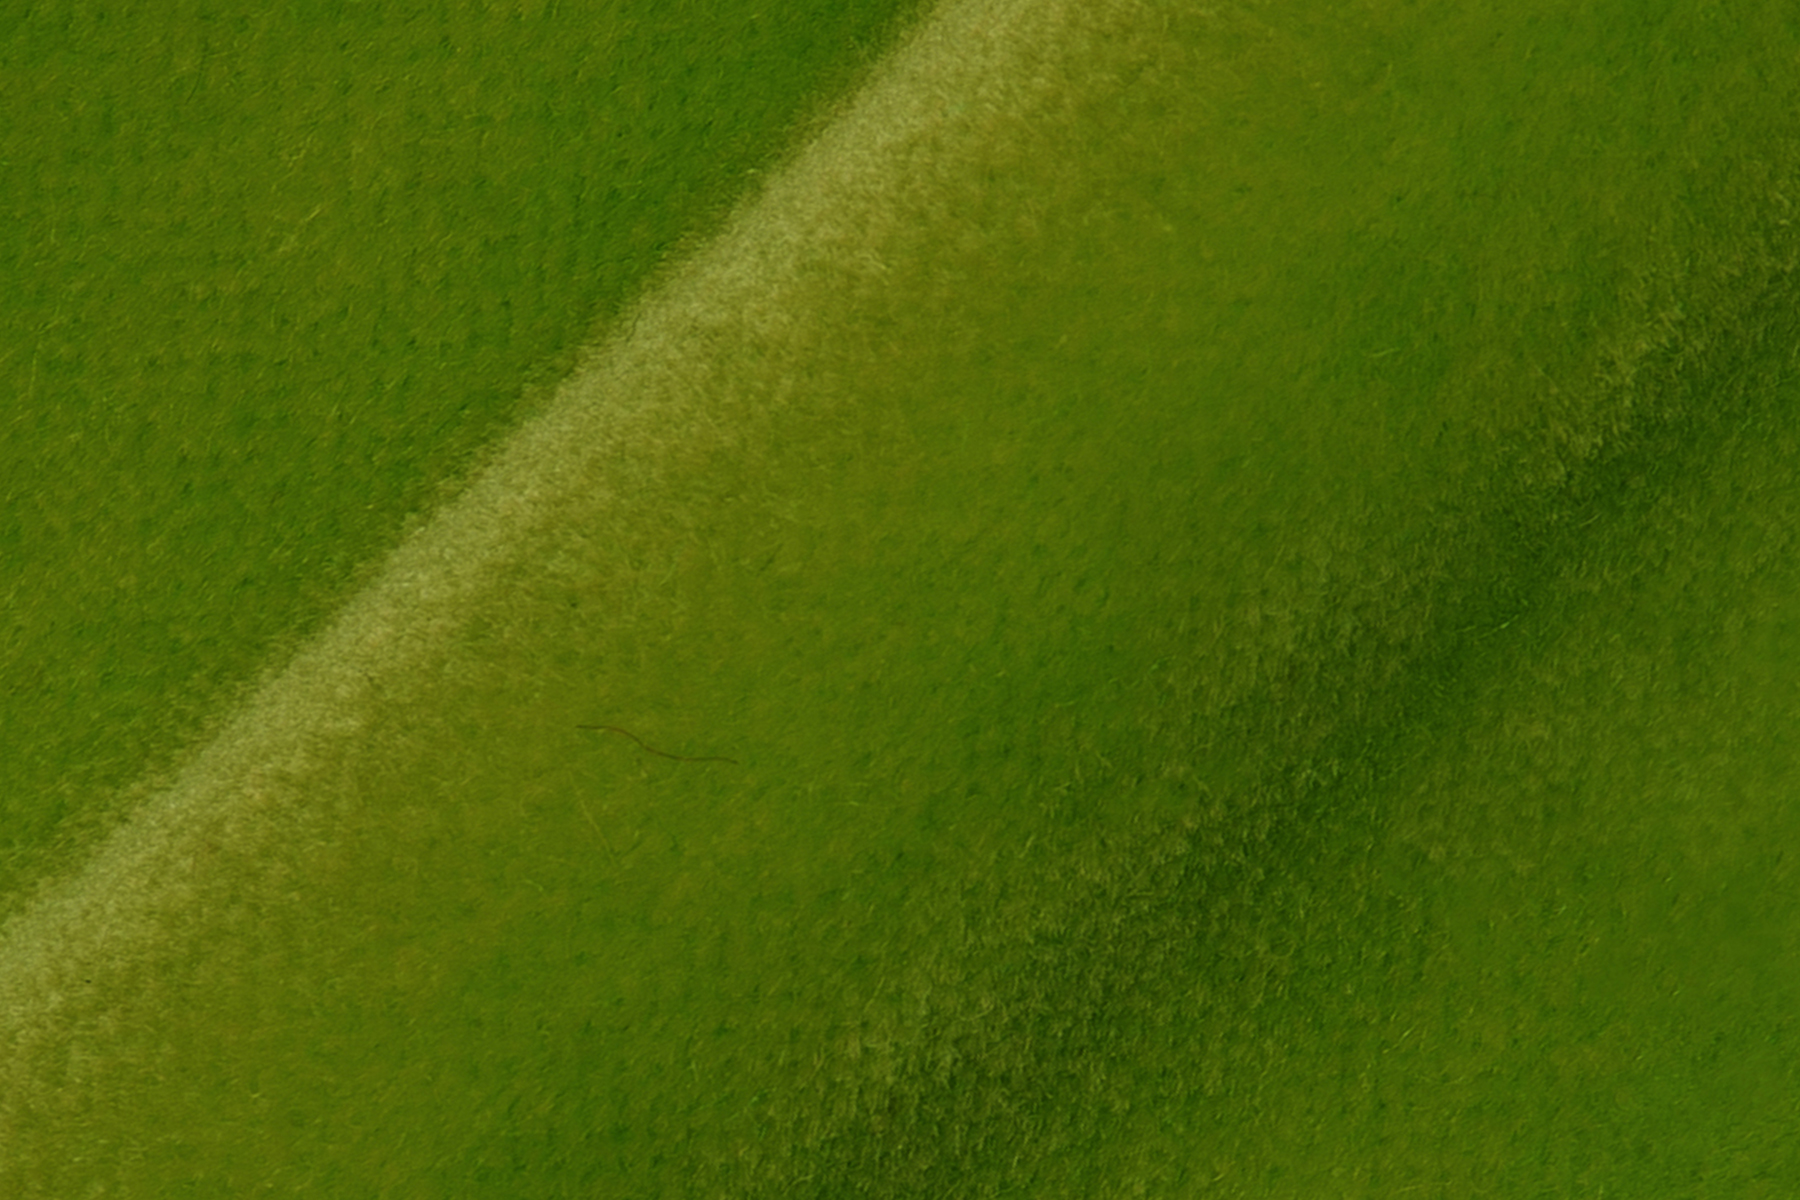 LUX VELVET 0775 BRIGHT GREEN Fabric by KOKET